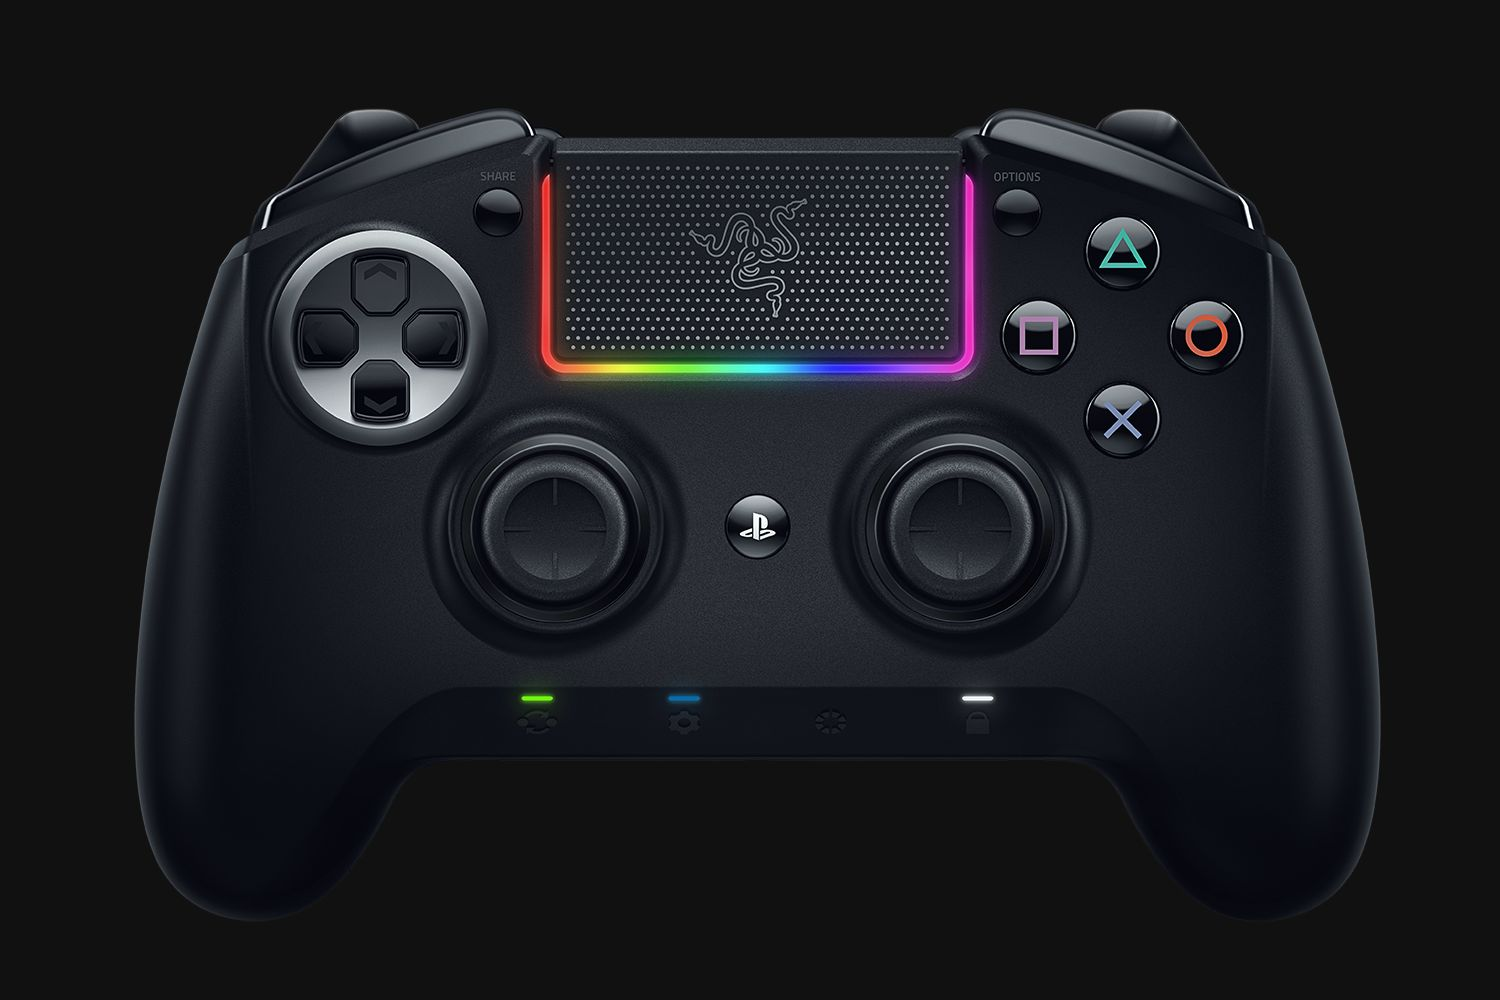 Review Razer Raiju Ultimate Controller Incredible And Expensive Mspoweruser Razer raiju tournament edition gaming controller features bluetooth and wired connection, and the first to have a mobile configuration app. review razer raiju ultimate controller